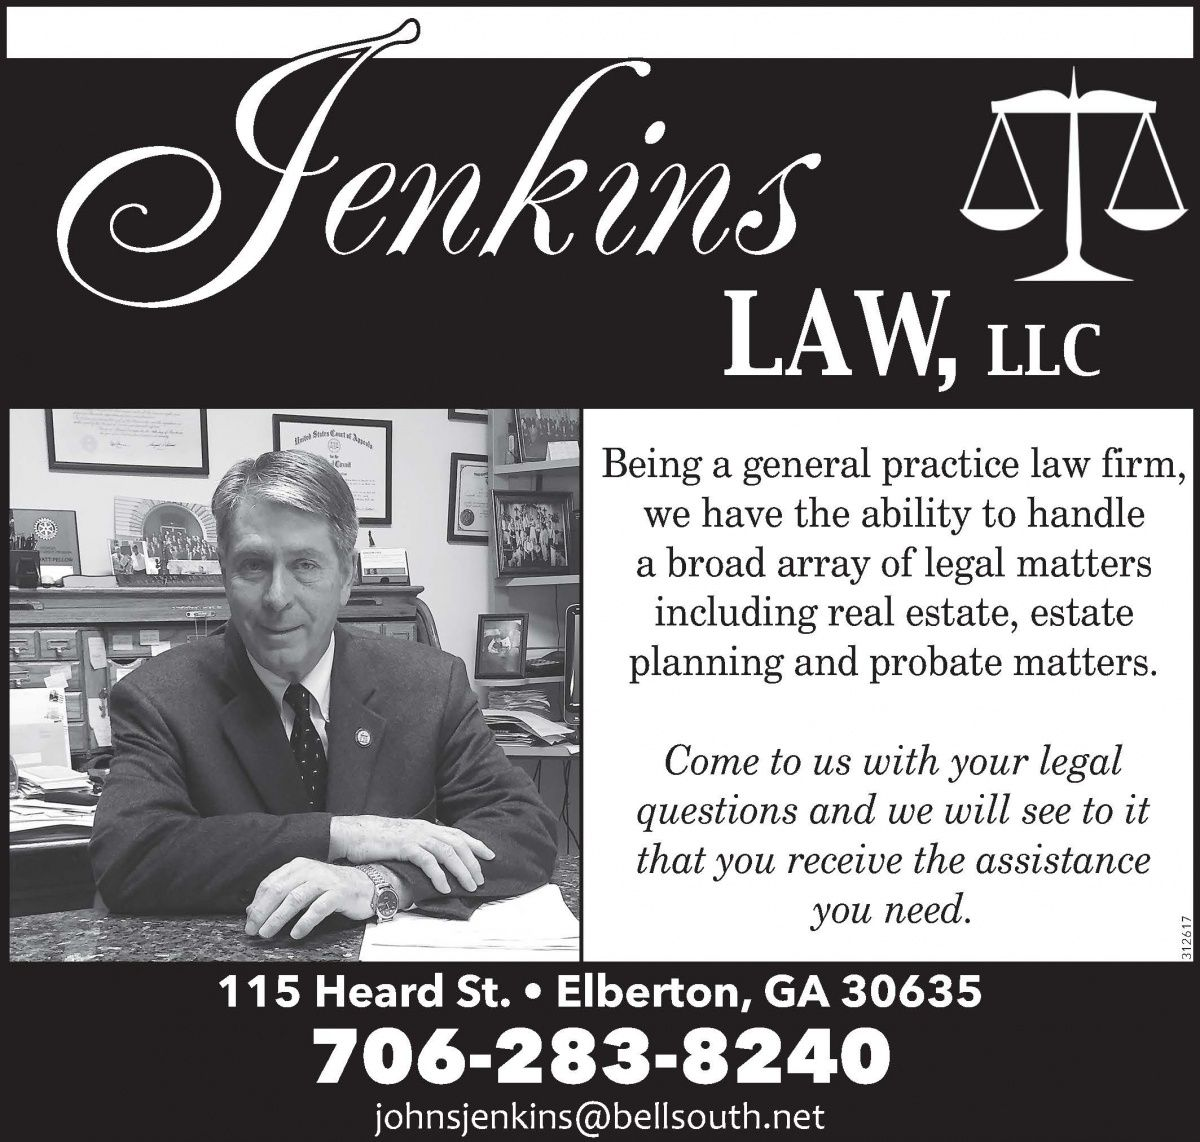 Being a general practice law firm, we have the ability to